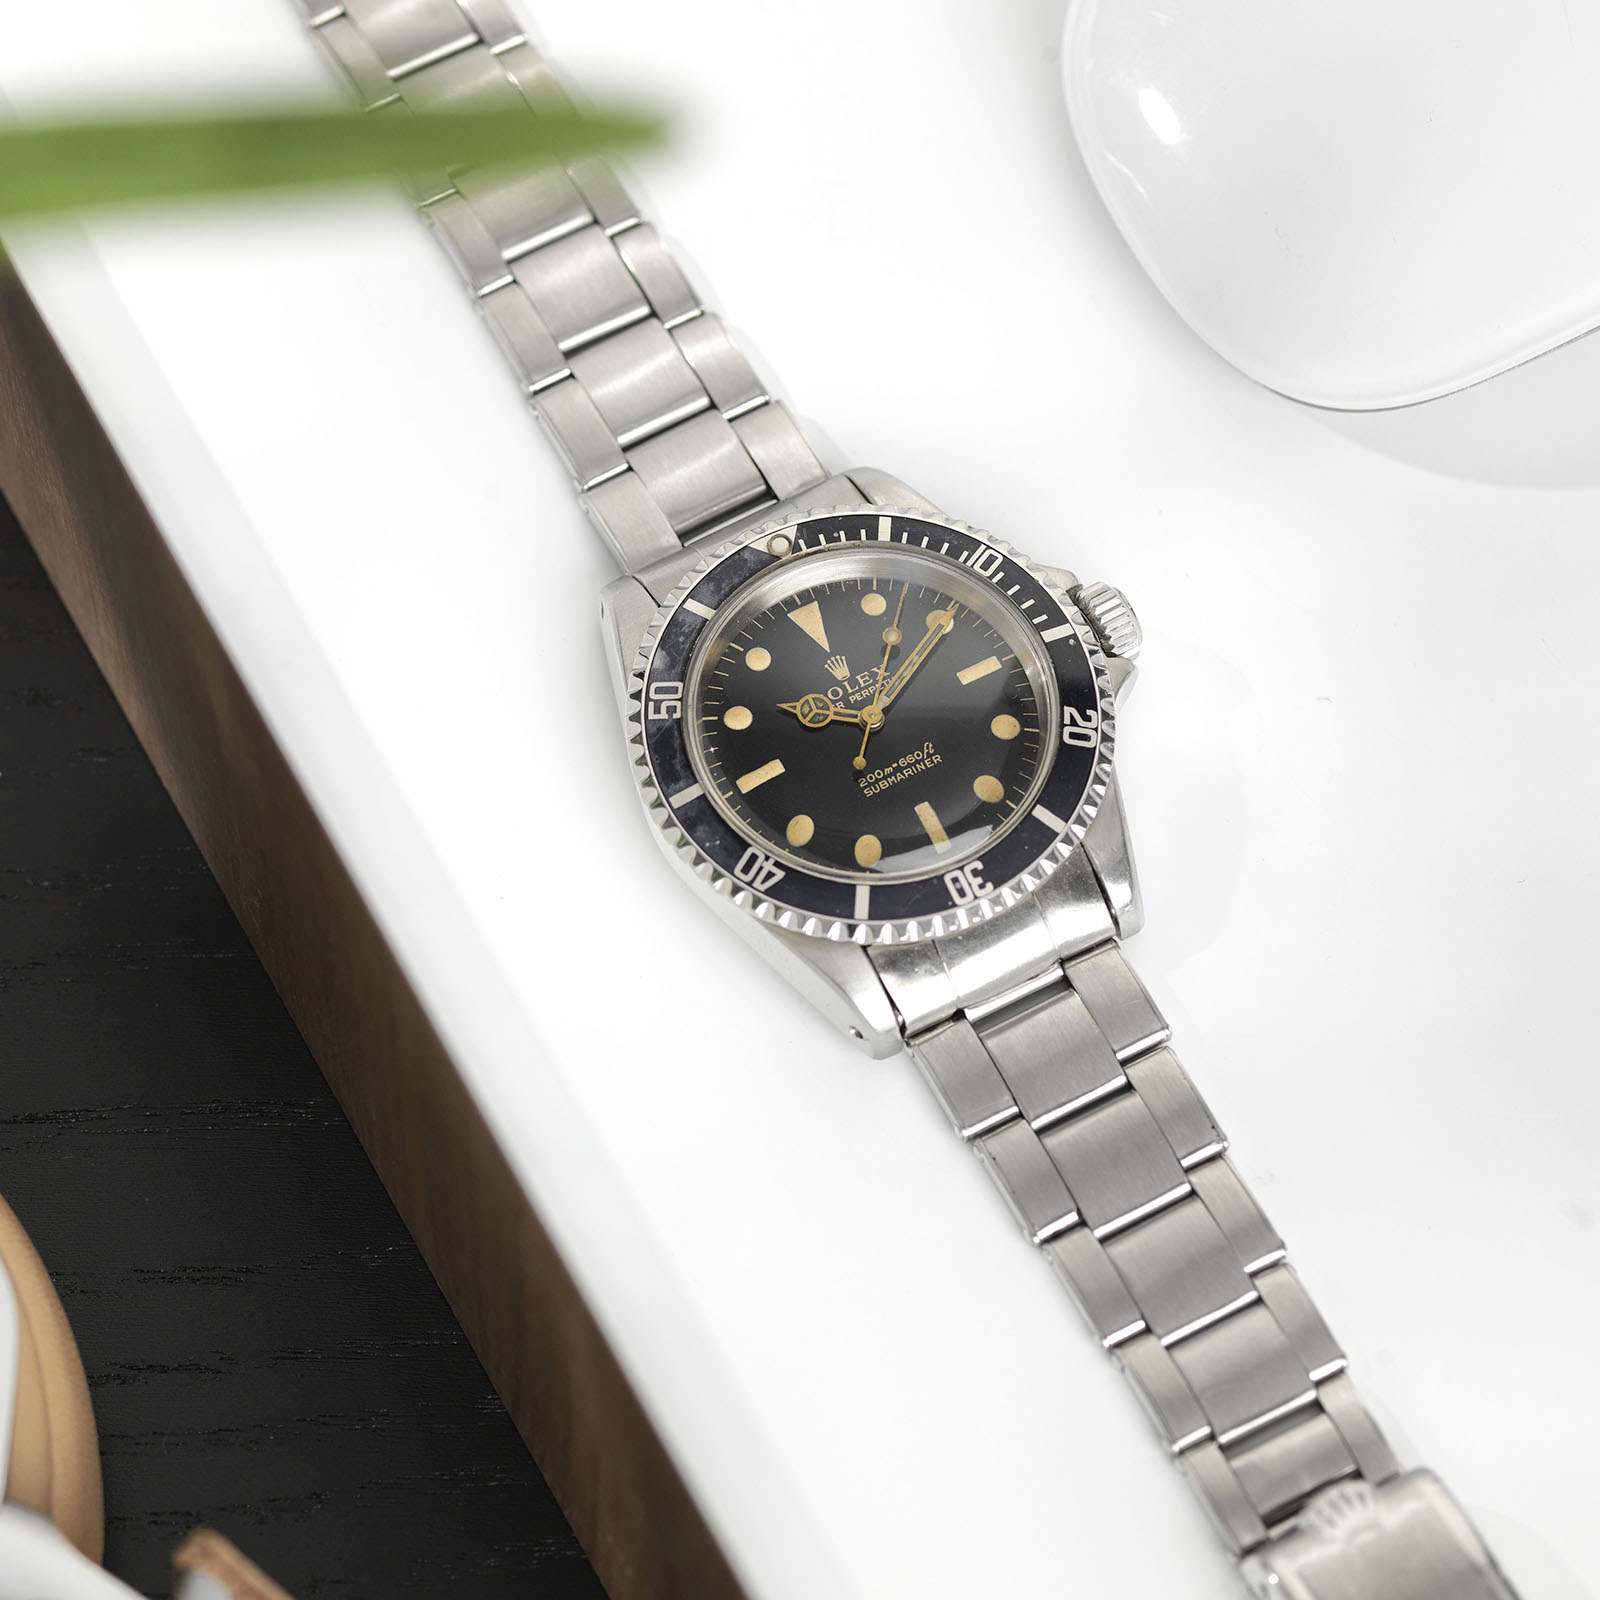 The South Pacific Rolex 5513